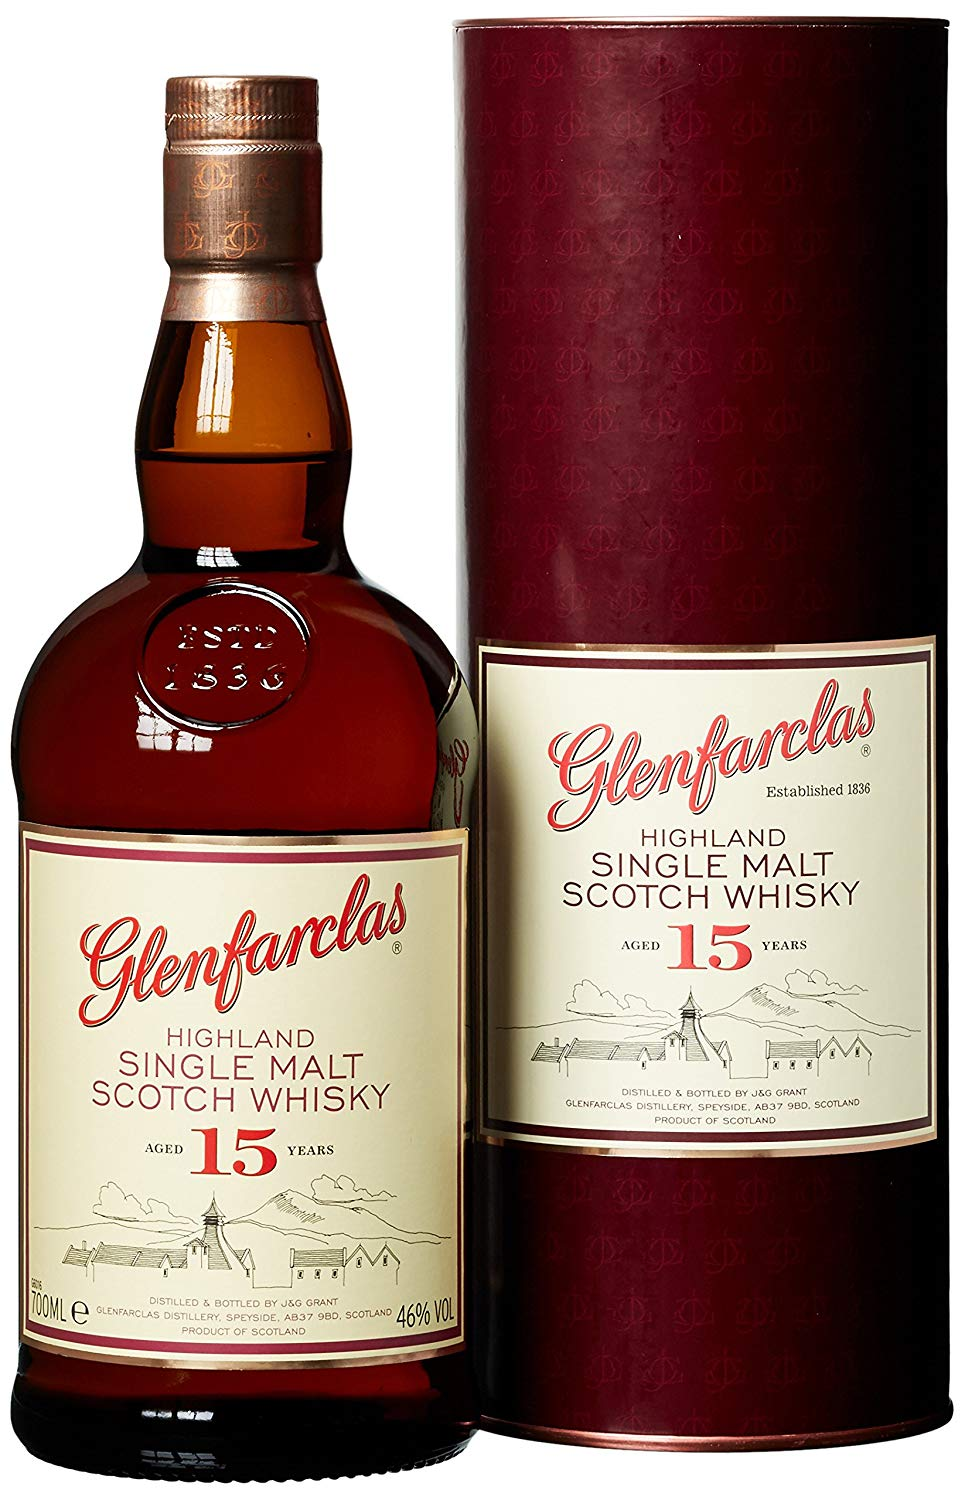 Glenfarclas Highland single malt Scotch whisky 15